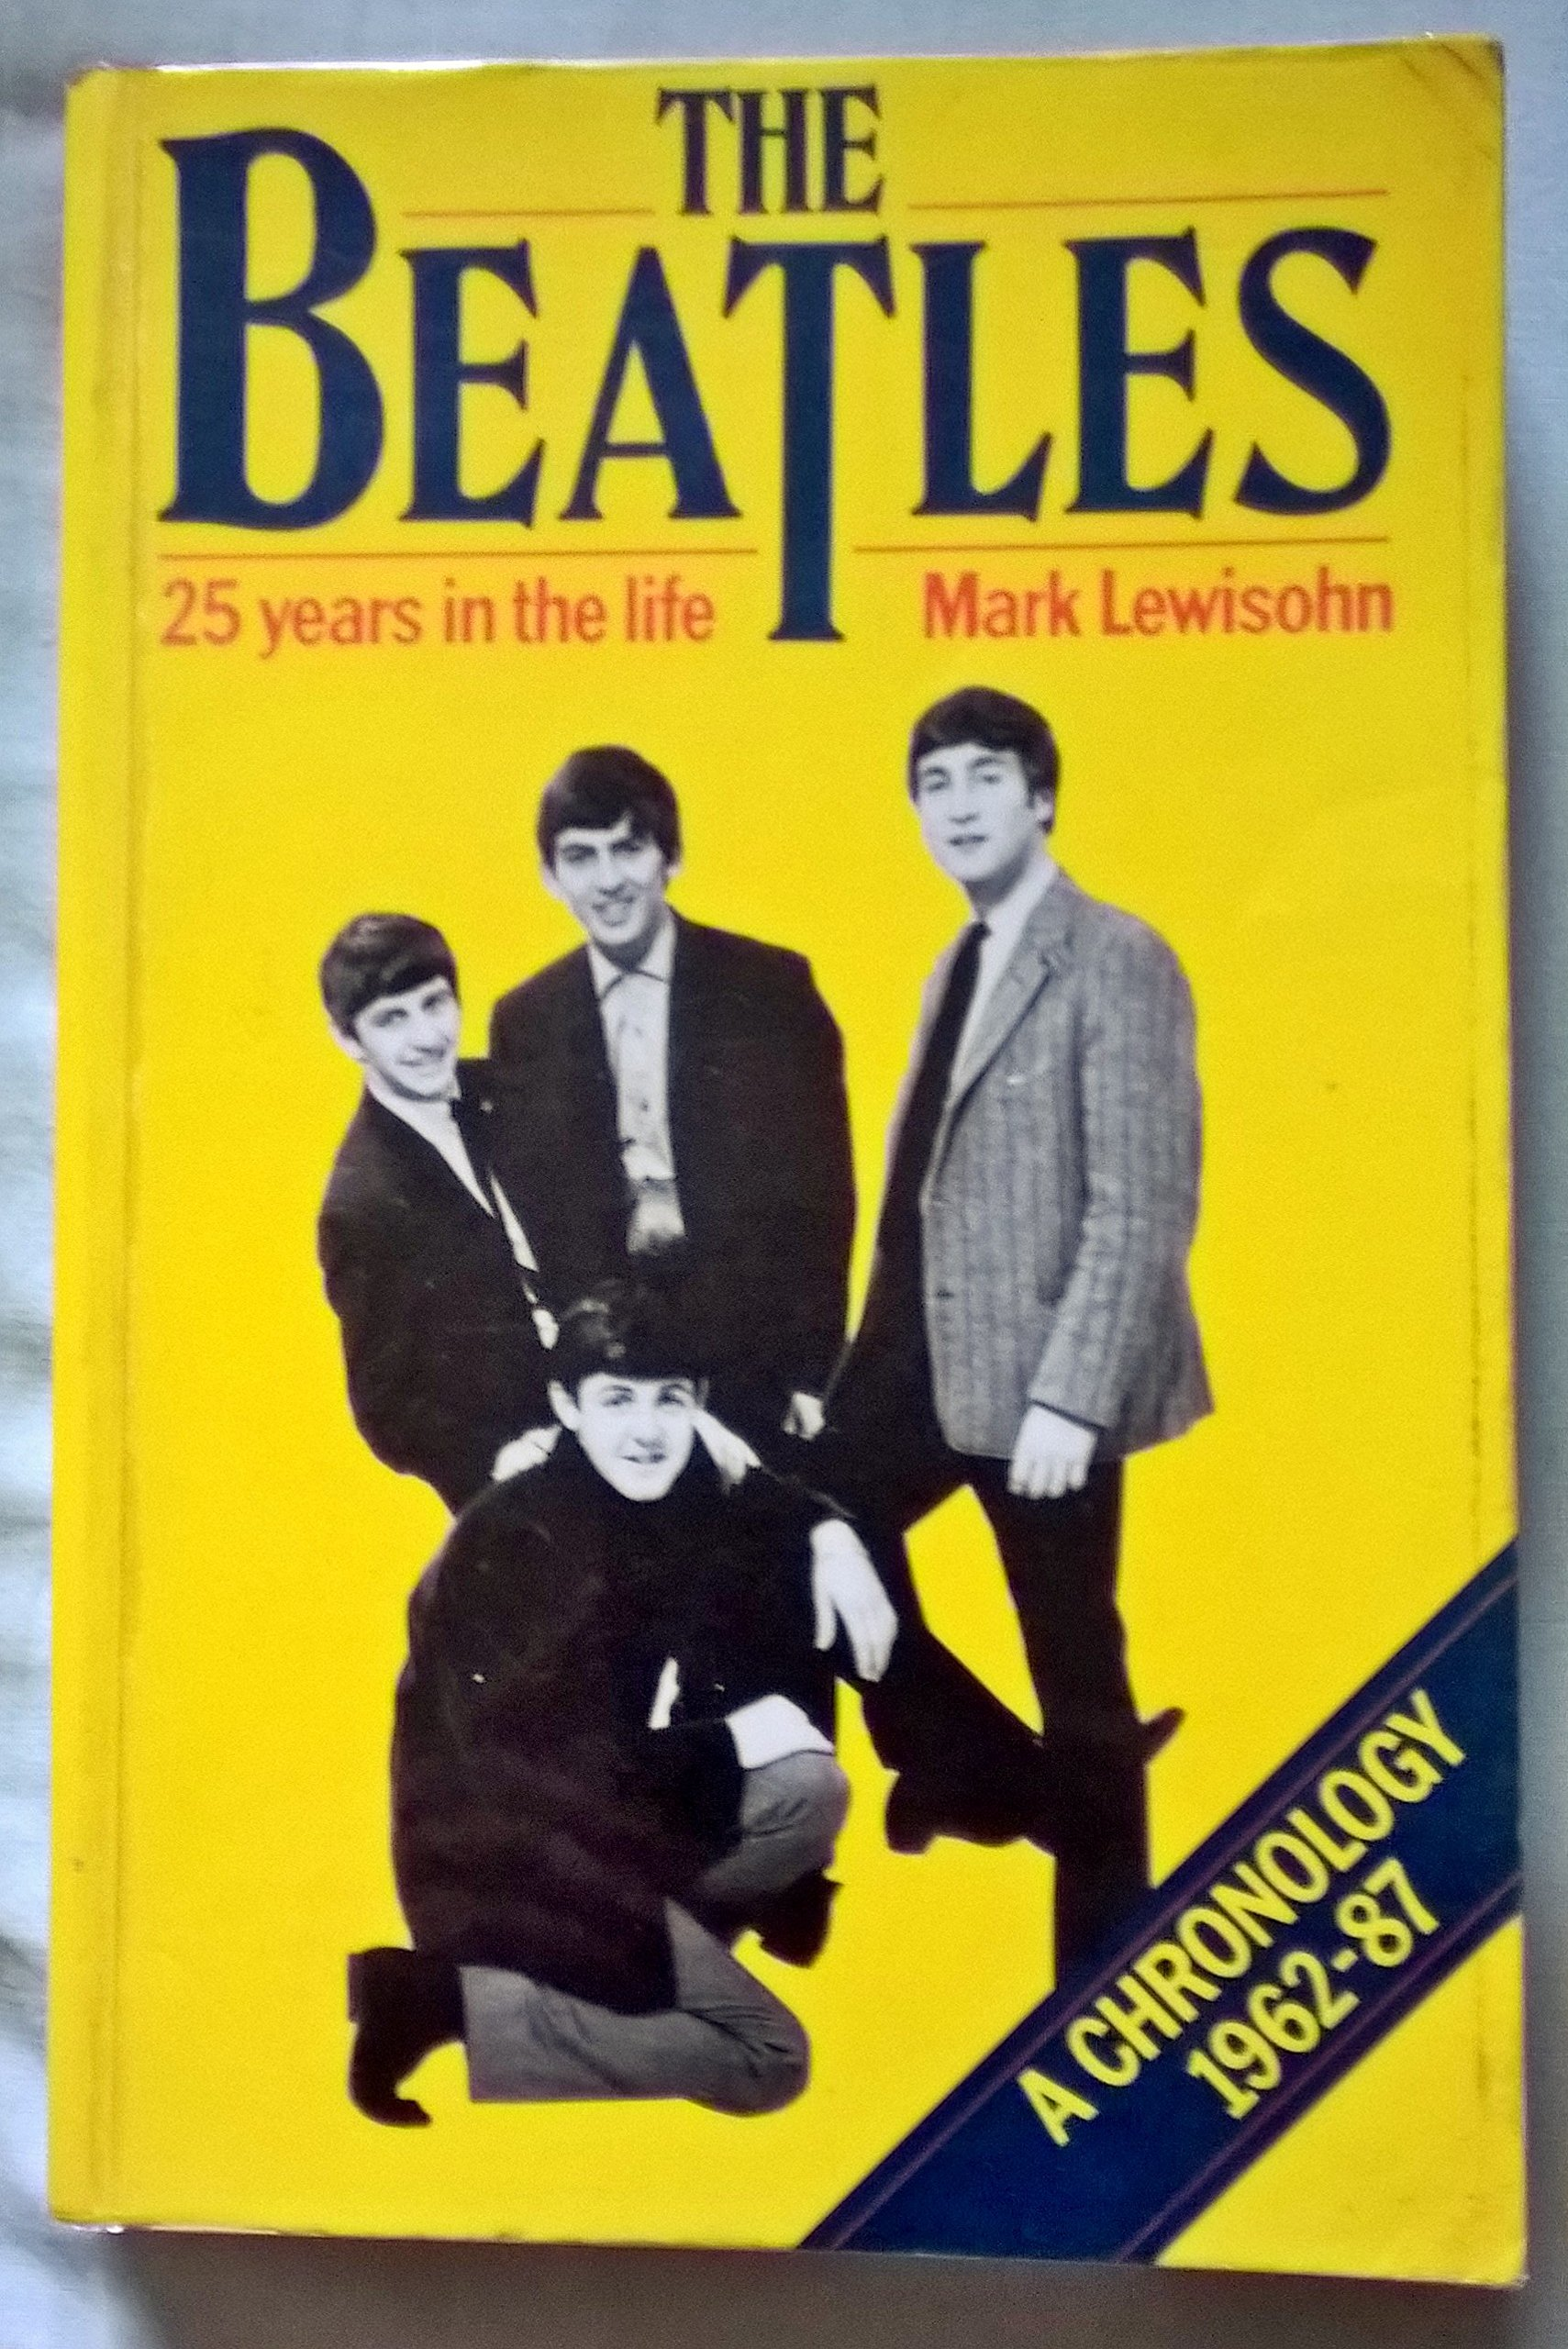 the beatles 25 years in the life